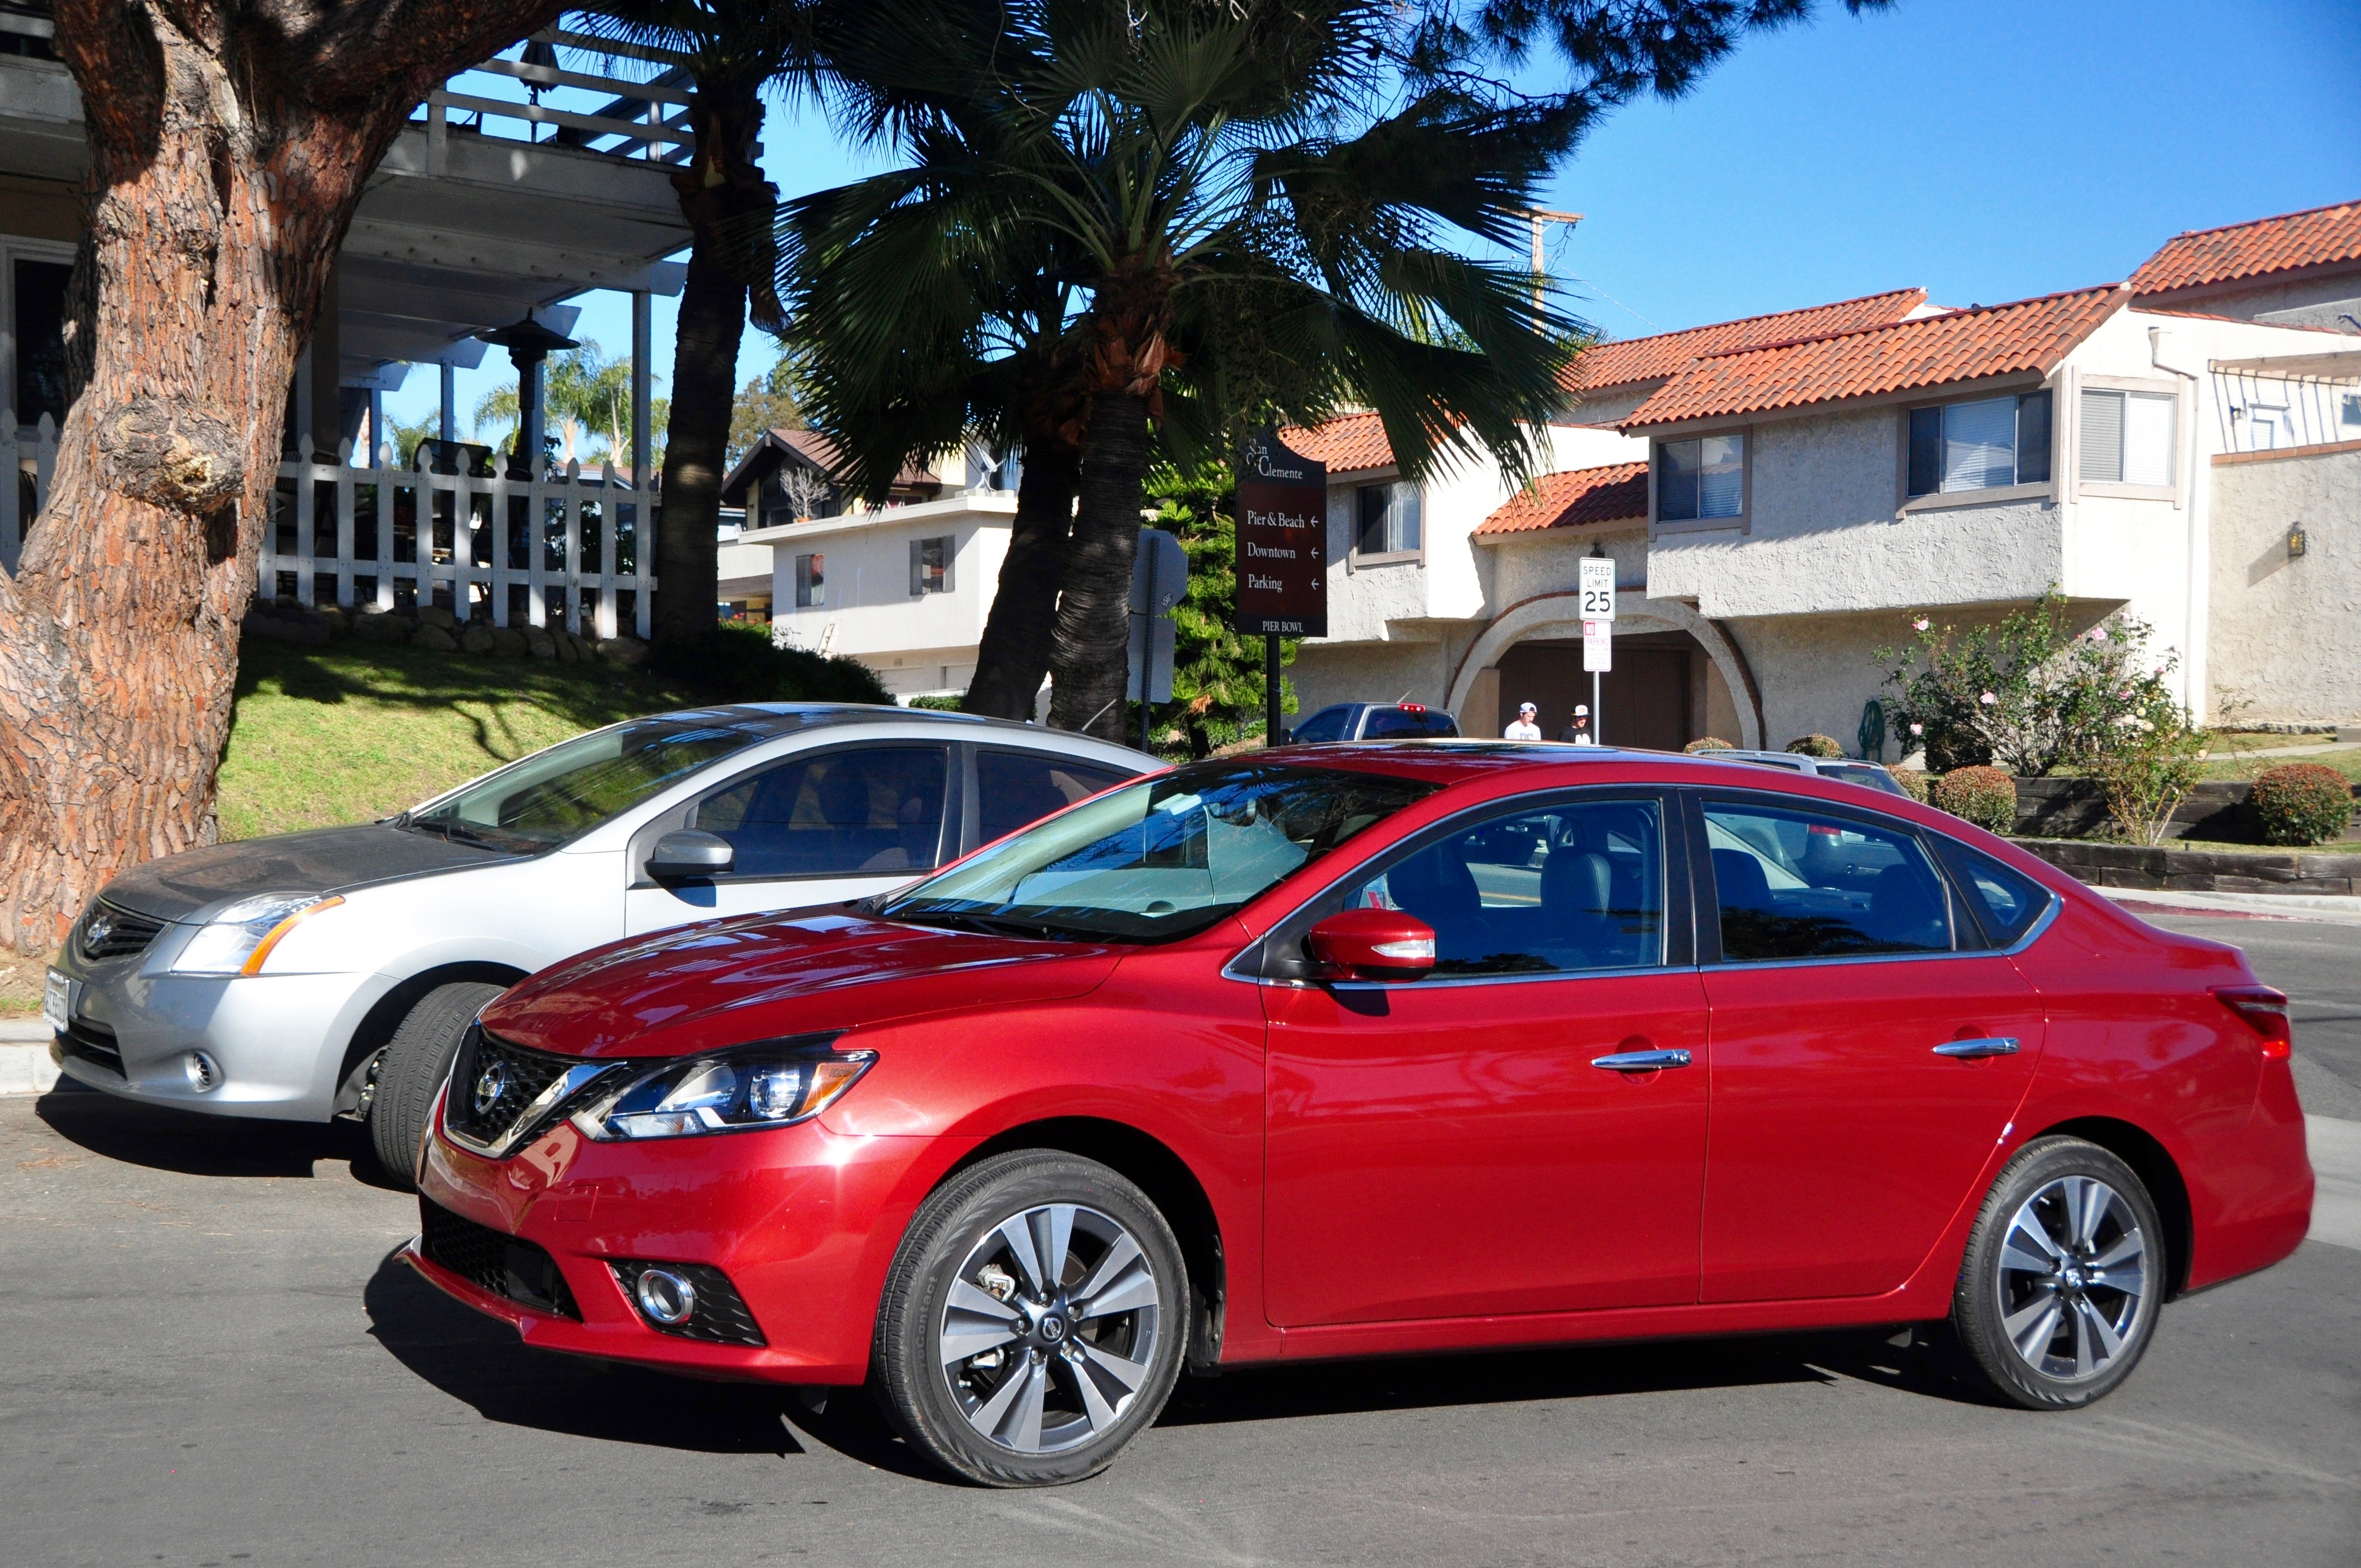 Nissan Sentras old and new (foreground)